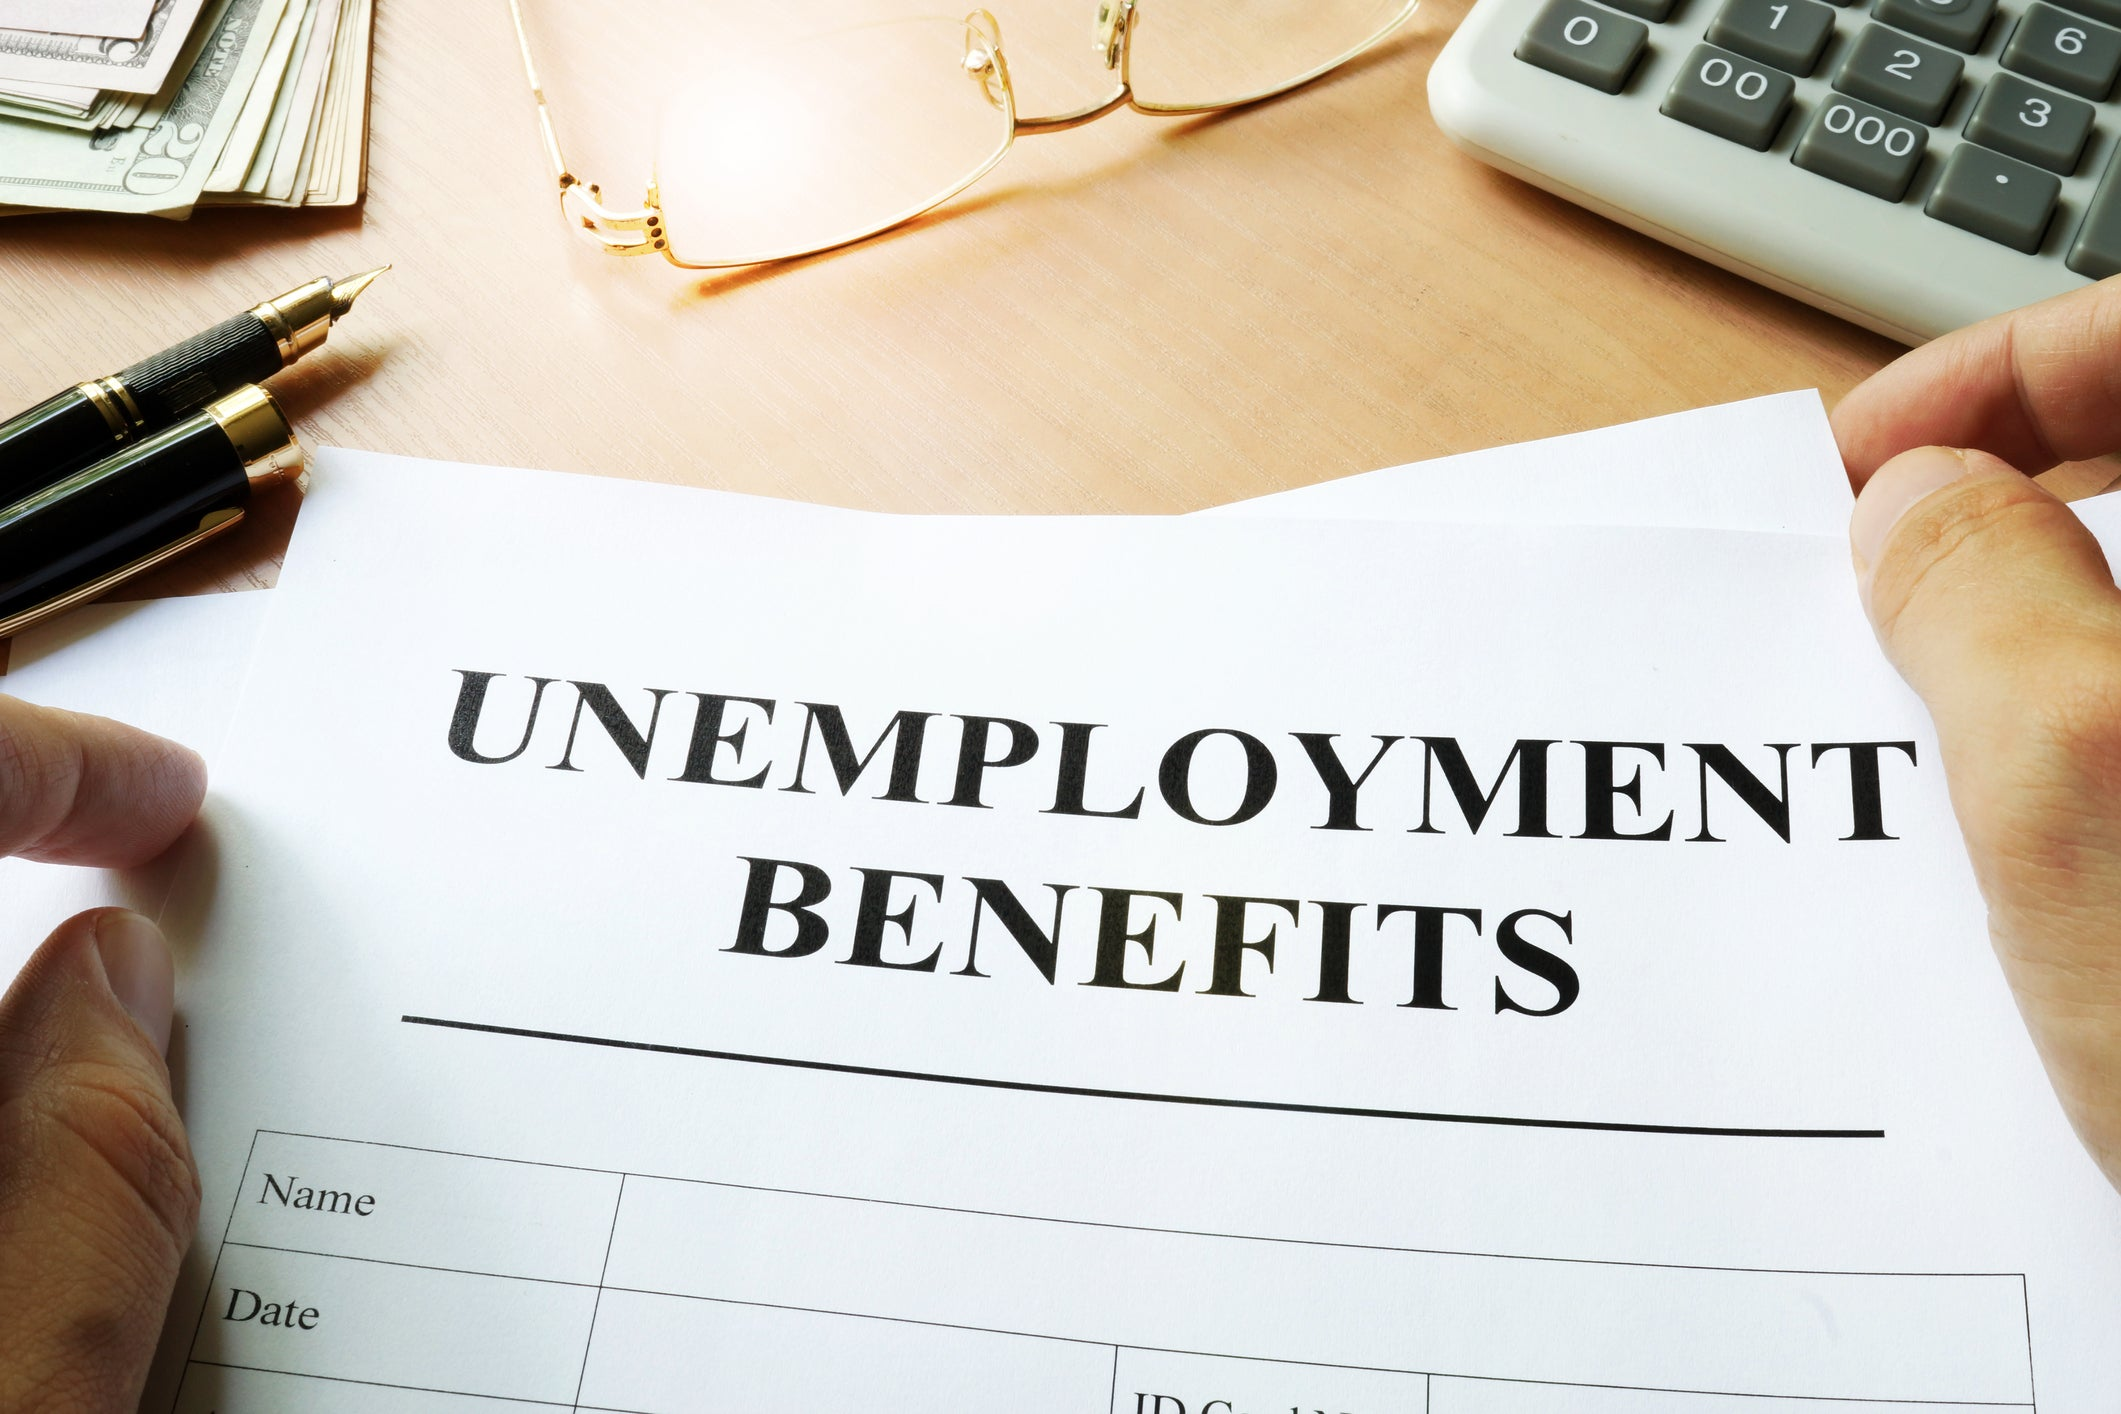 State seeks to provide additional unemployment benefit